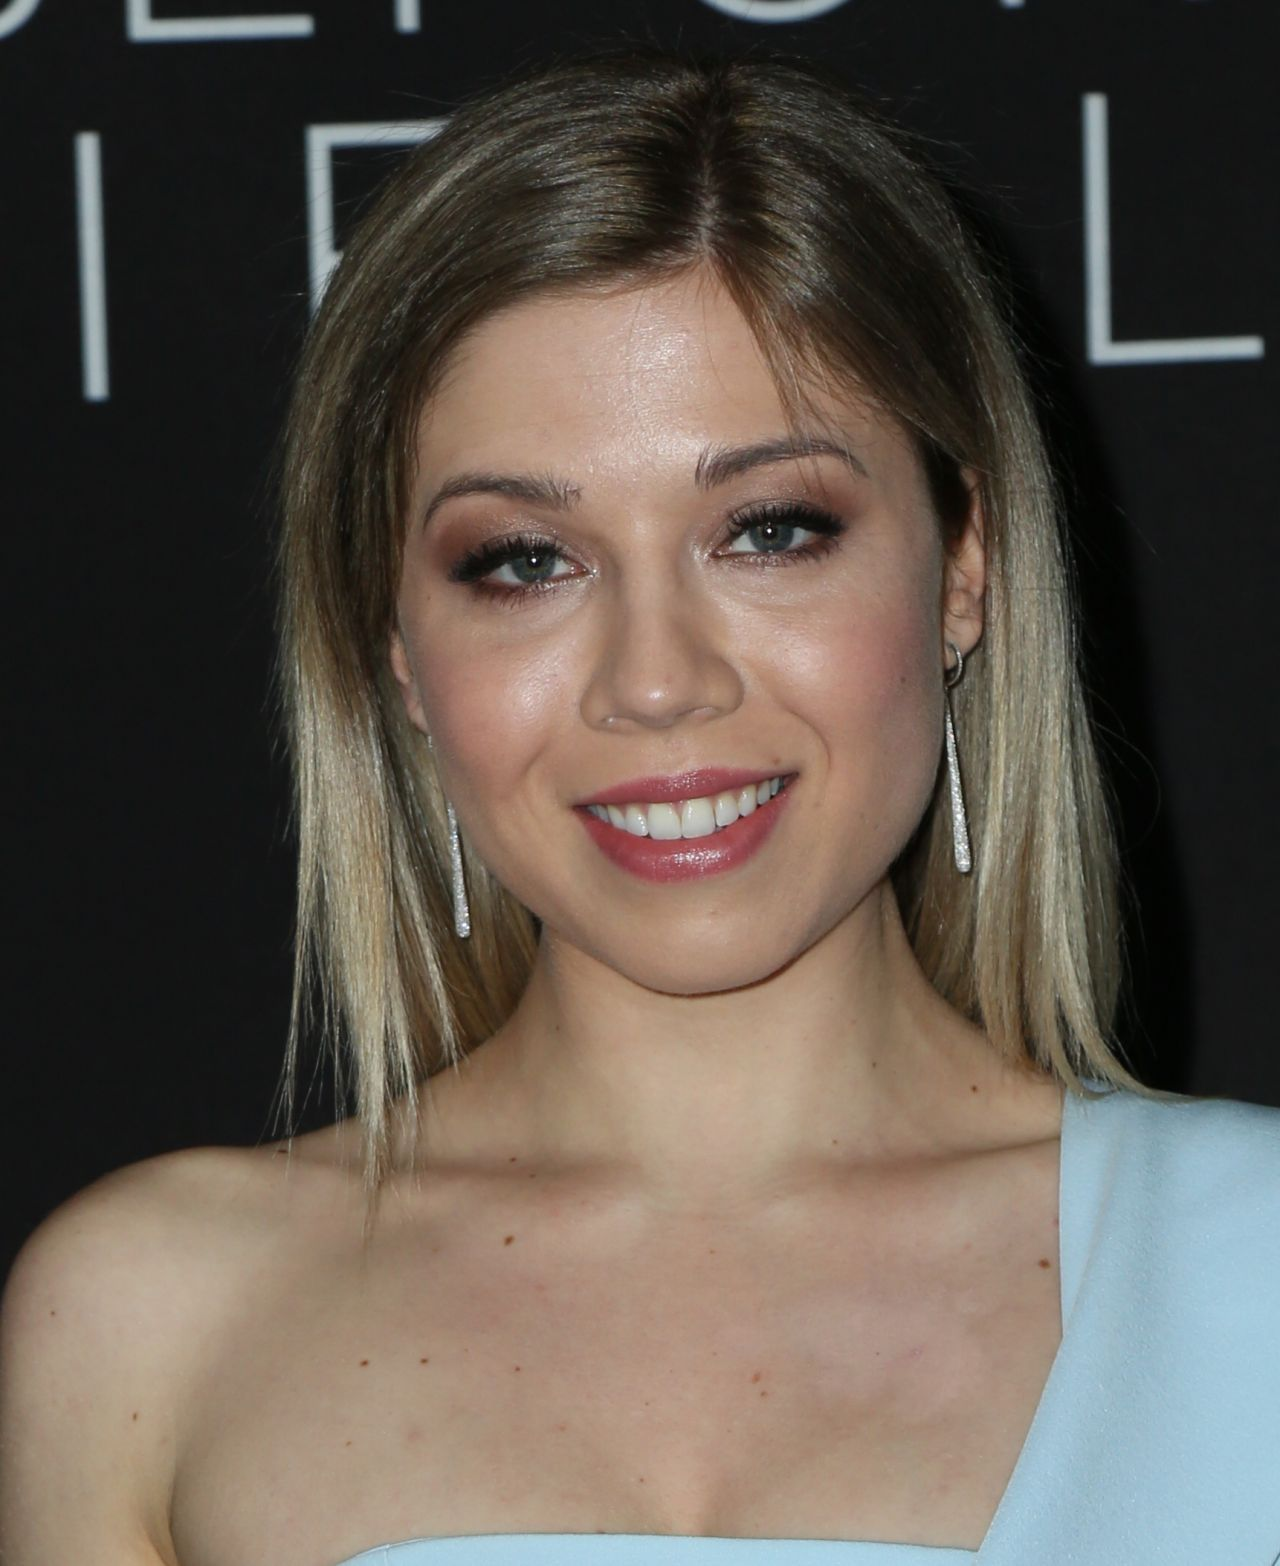 Jennette Mccurdy At Before I Fall Premiere In Los